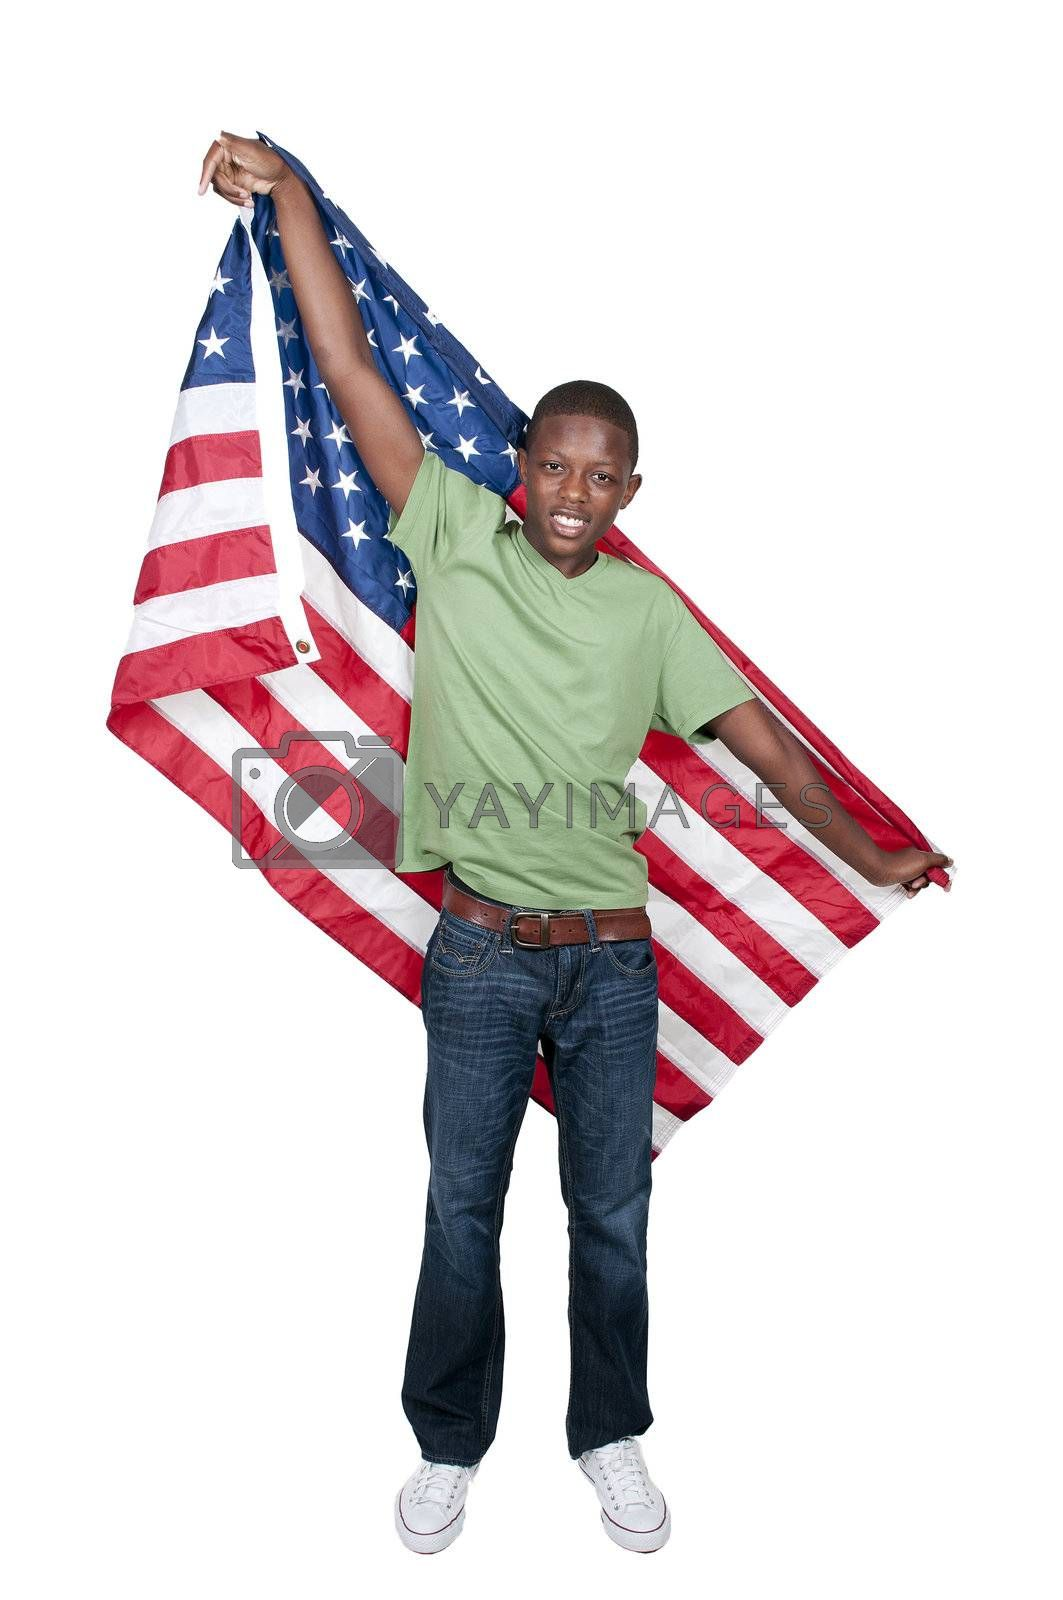 Handsome young teenaged black with the American flag